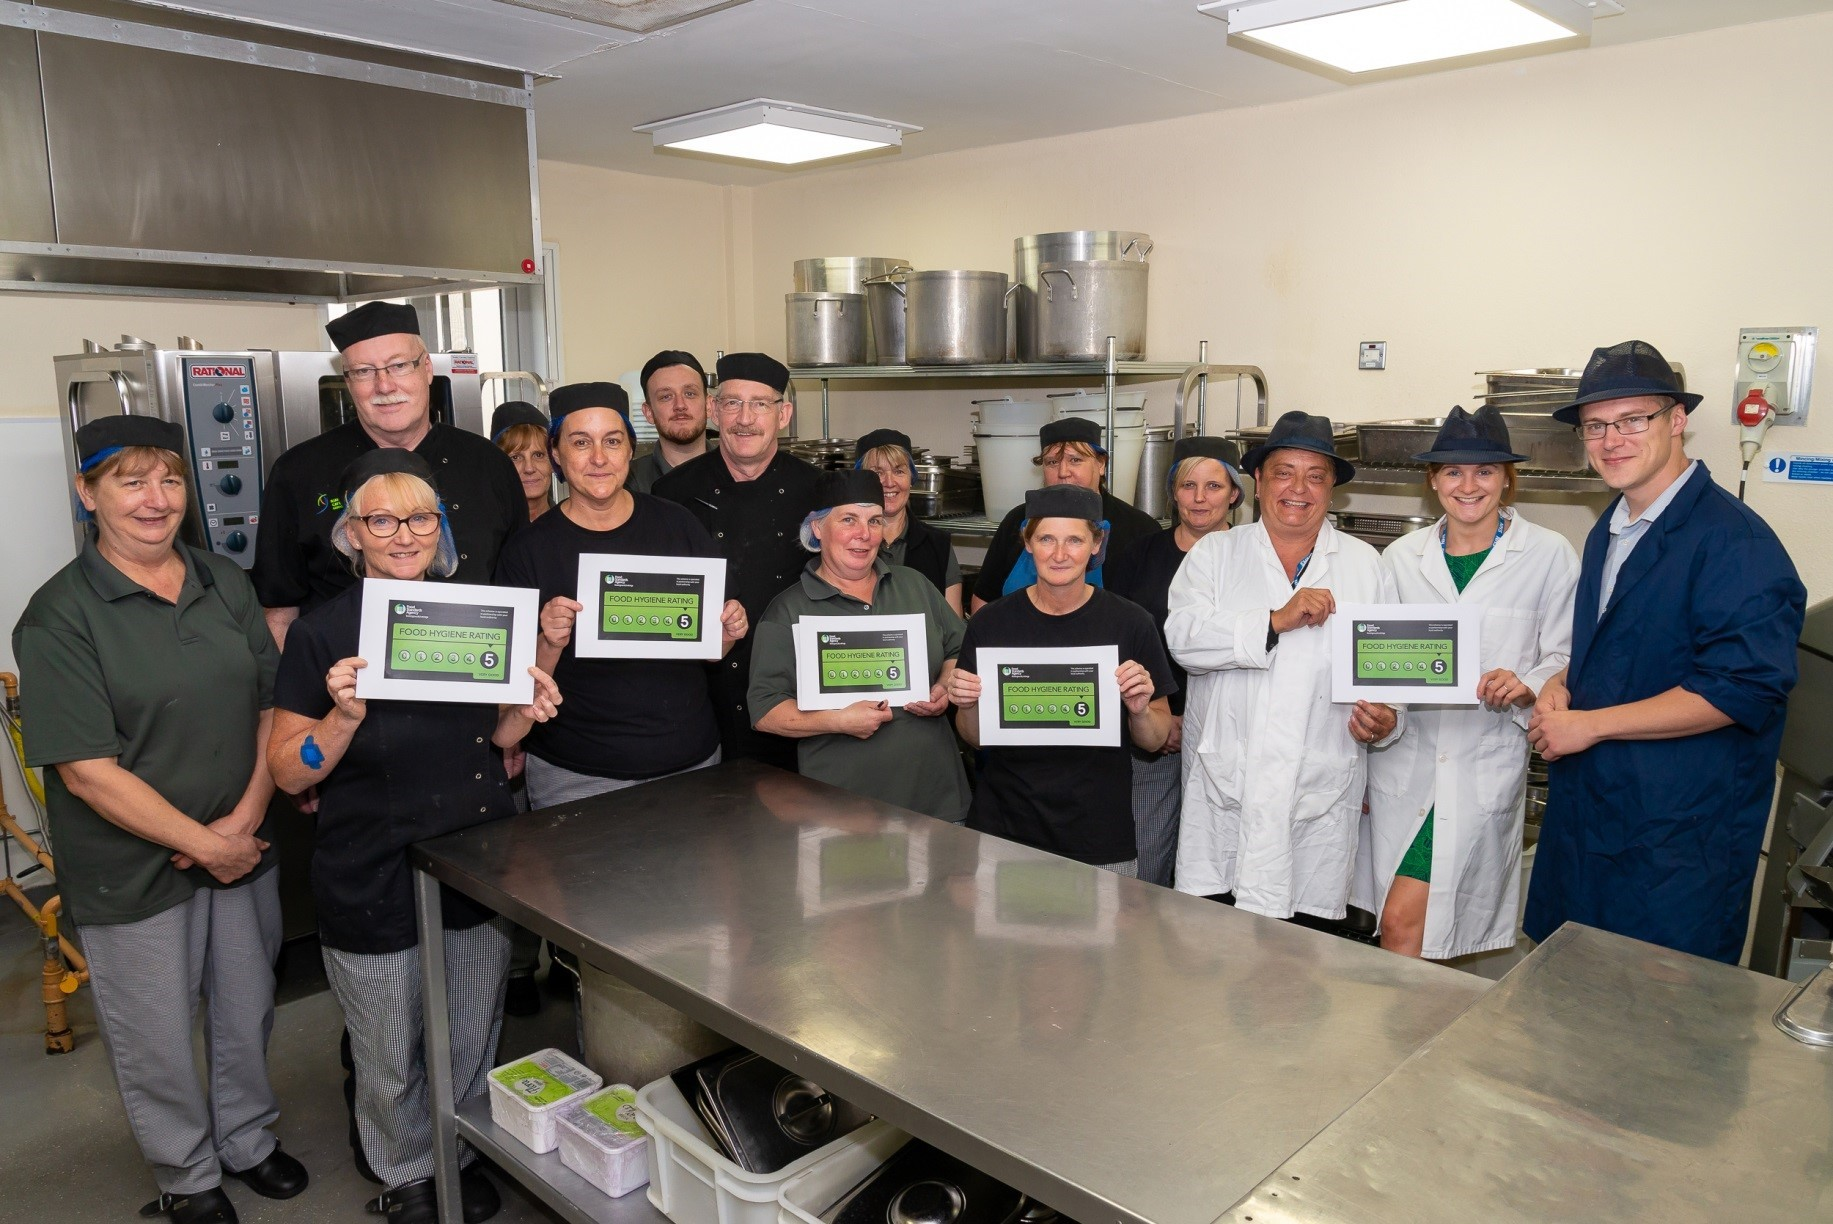 The Catering Team at RJAH celebrating their success.